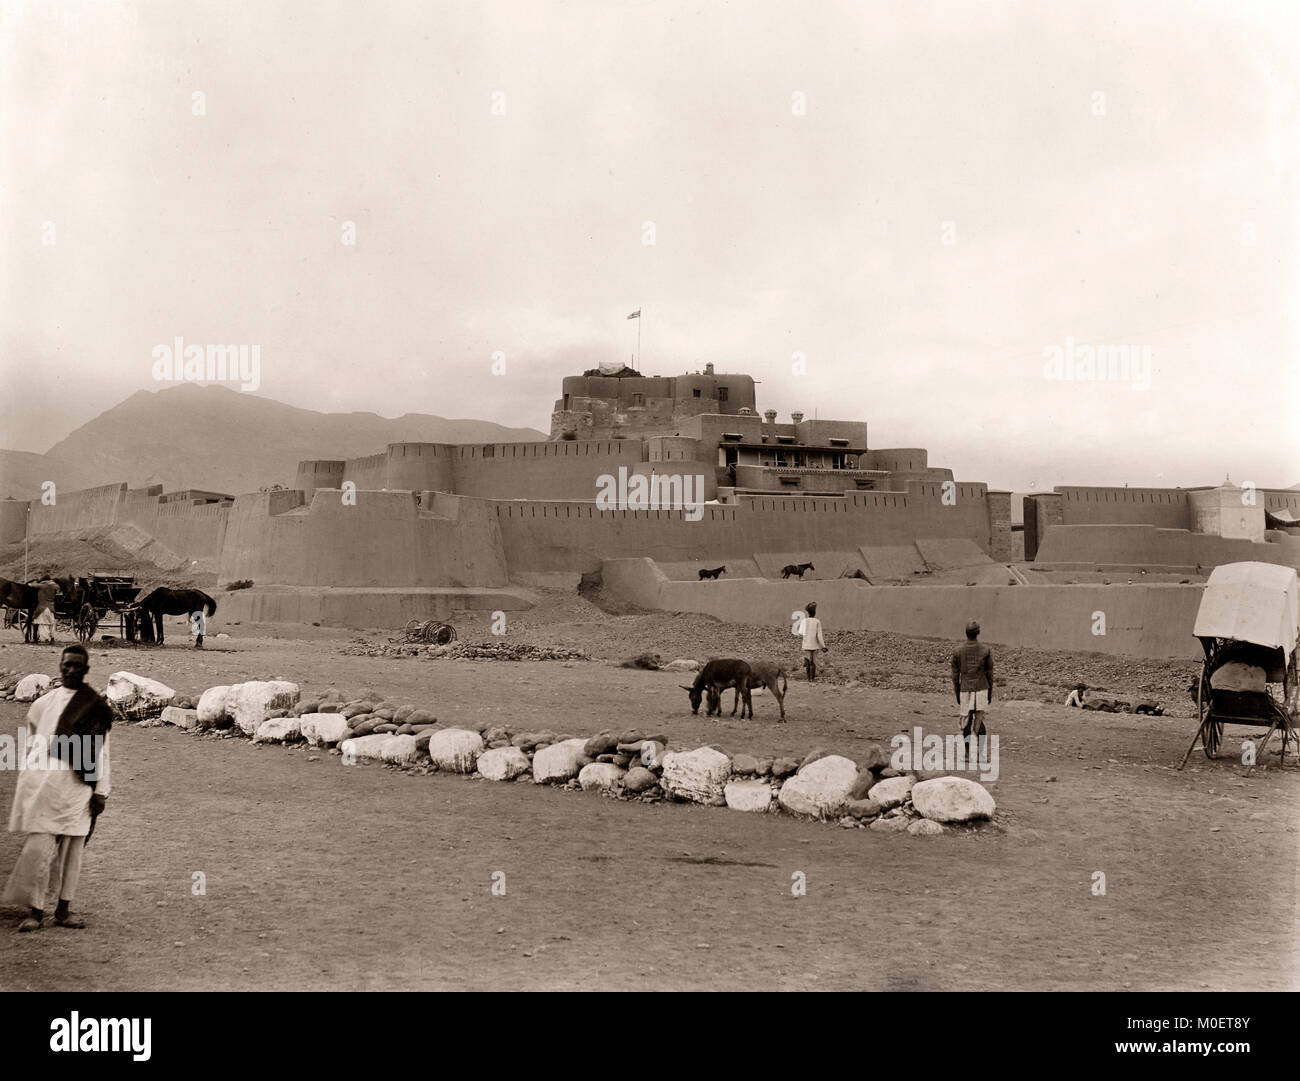 Jamrud Fort, Khyber Pass, NW Frontier, India (now Pakistan) c.1890's - Stock Image